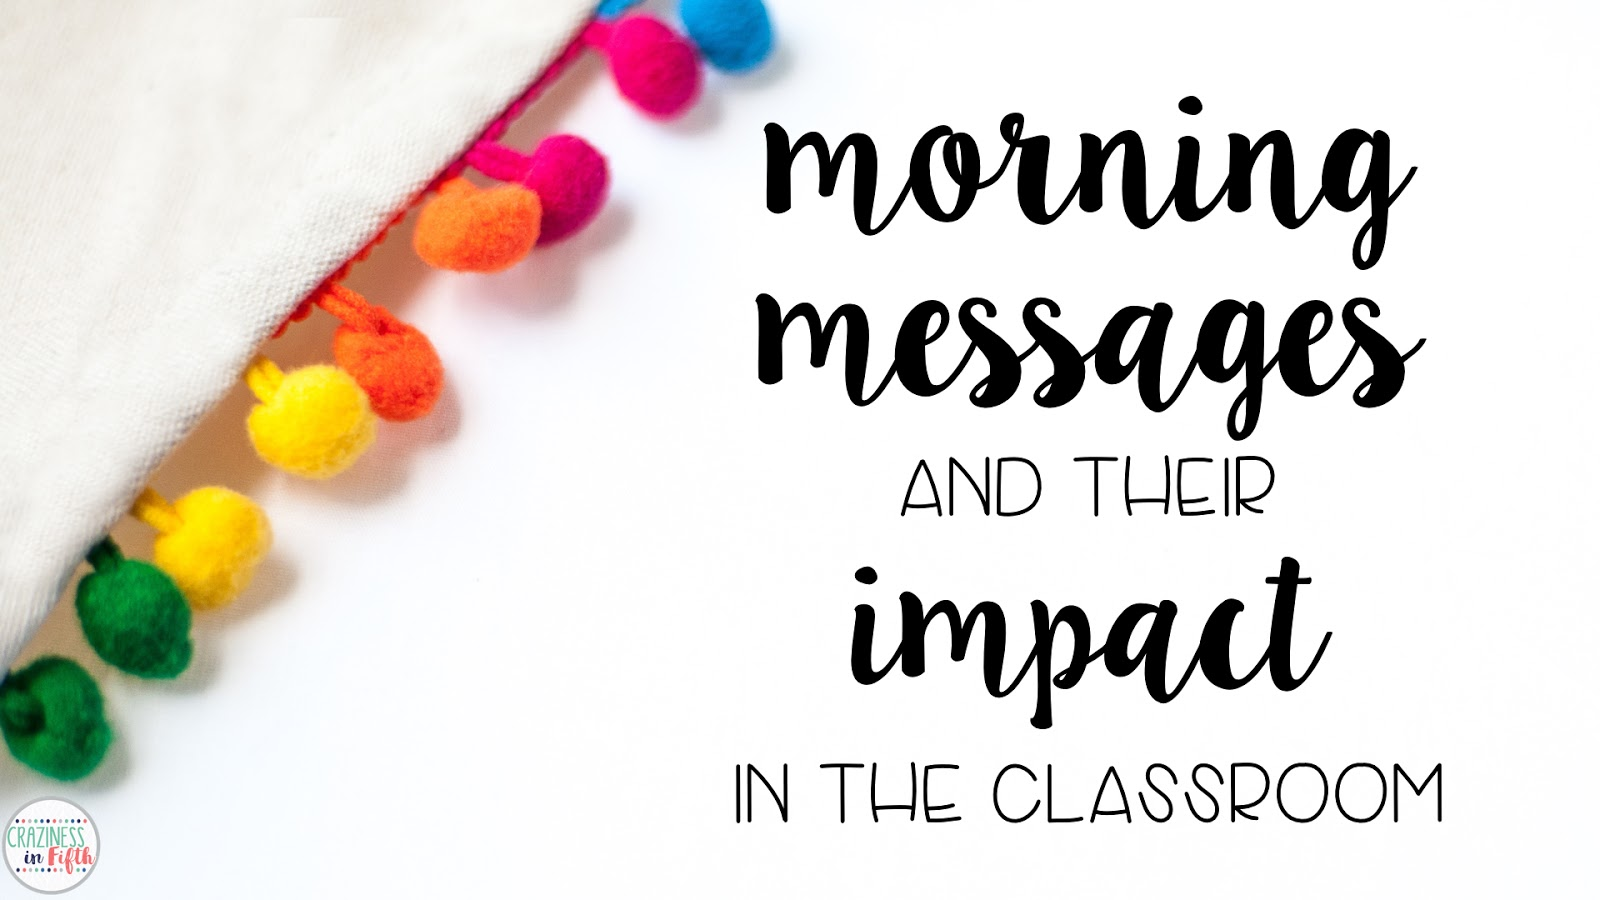 Craziness In Fifth Morning Messages Their Impact